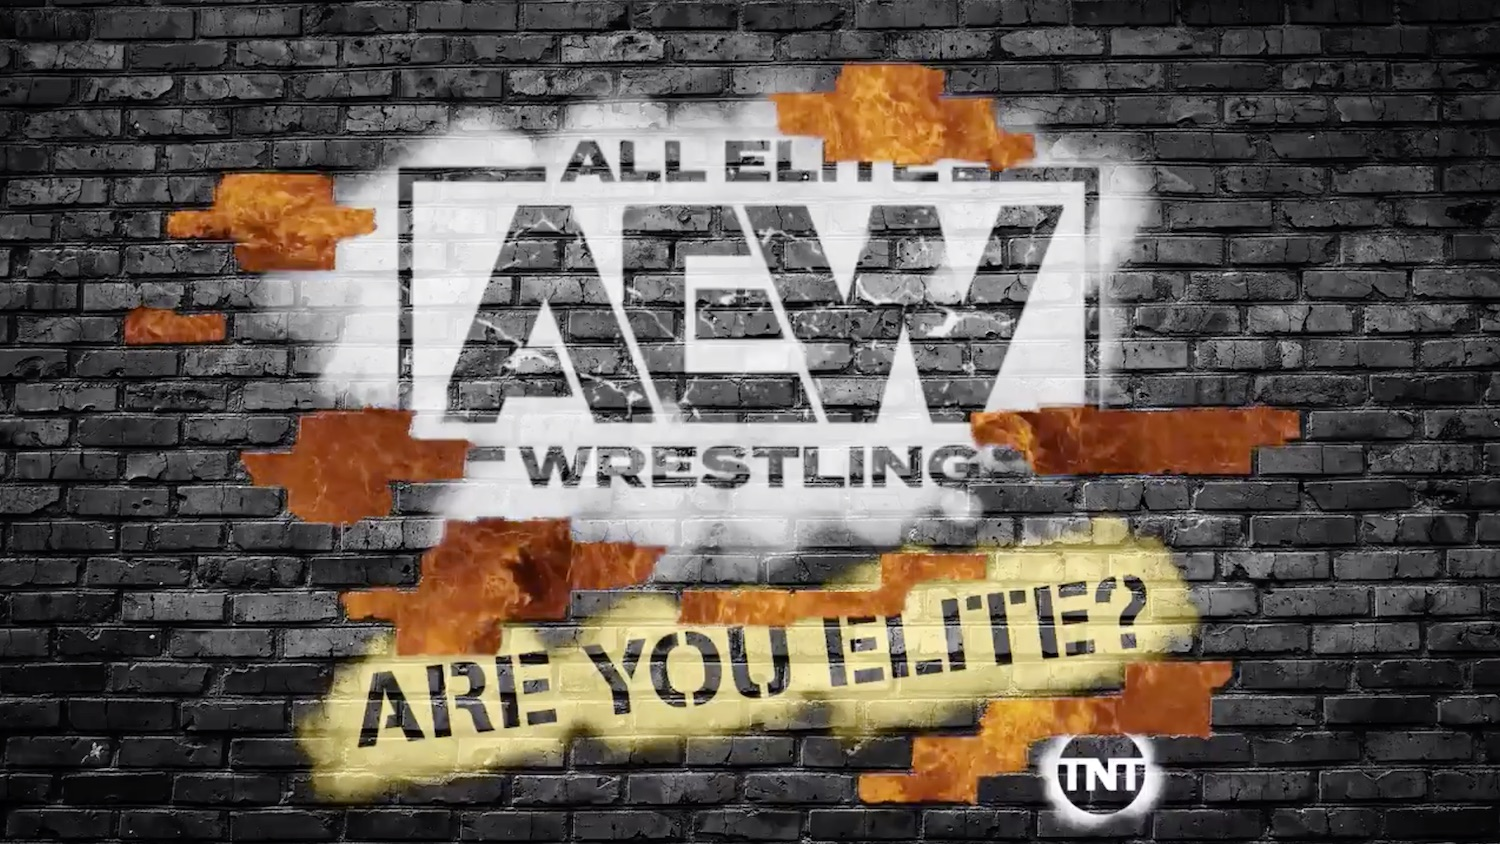 AEW's weekly series will officially debut on TNT October 2nd